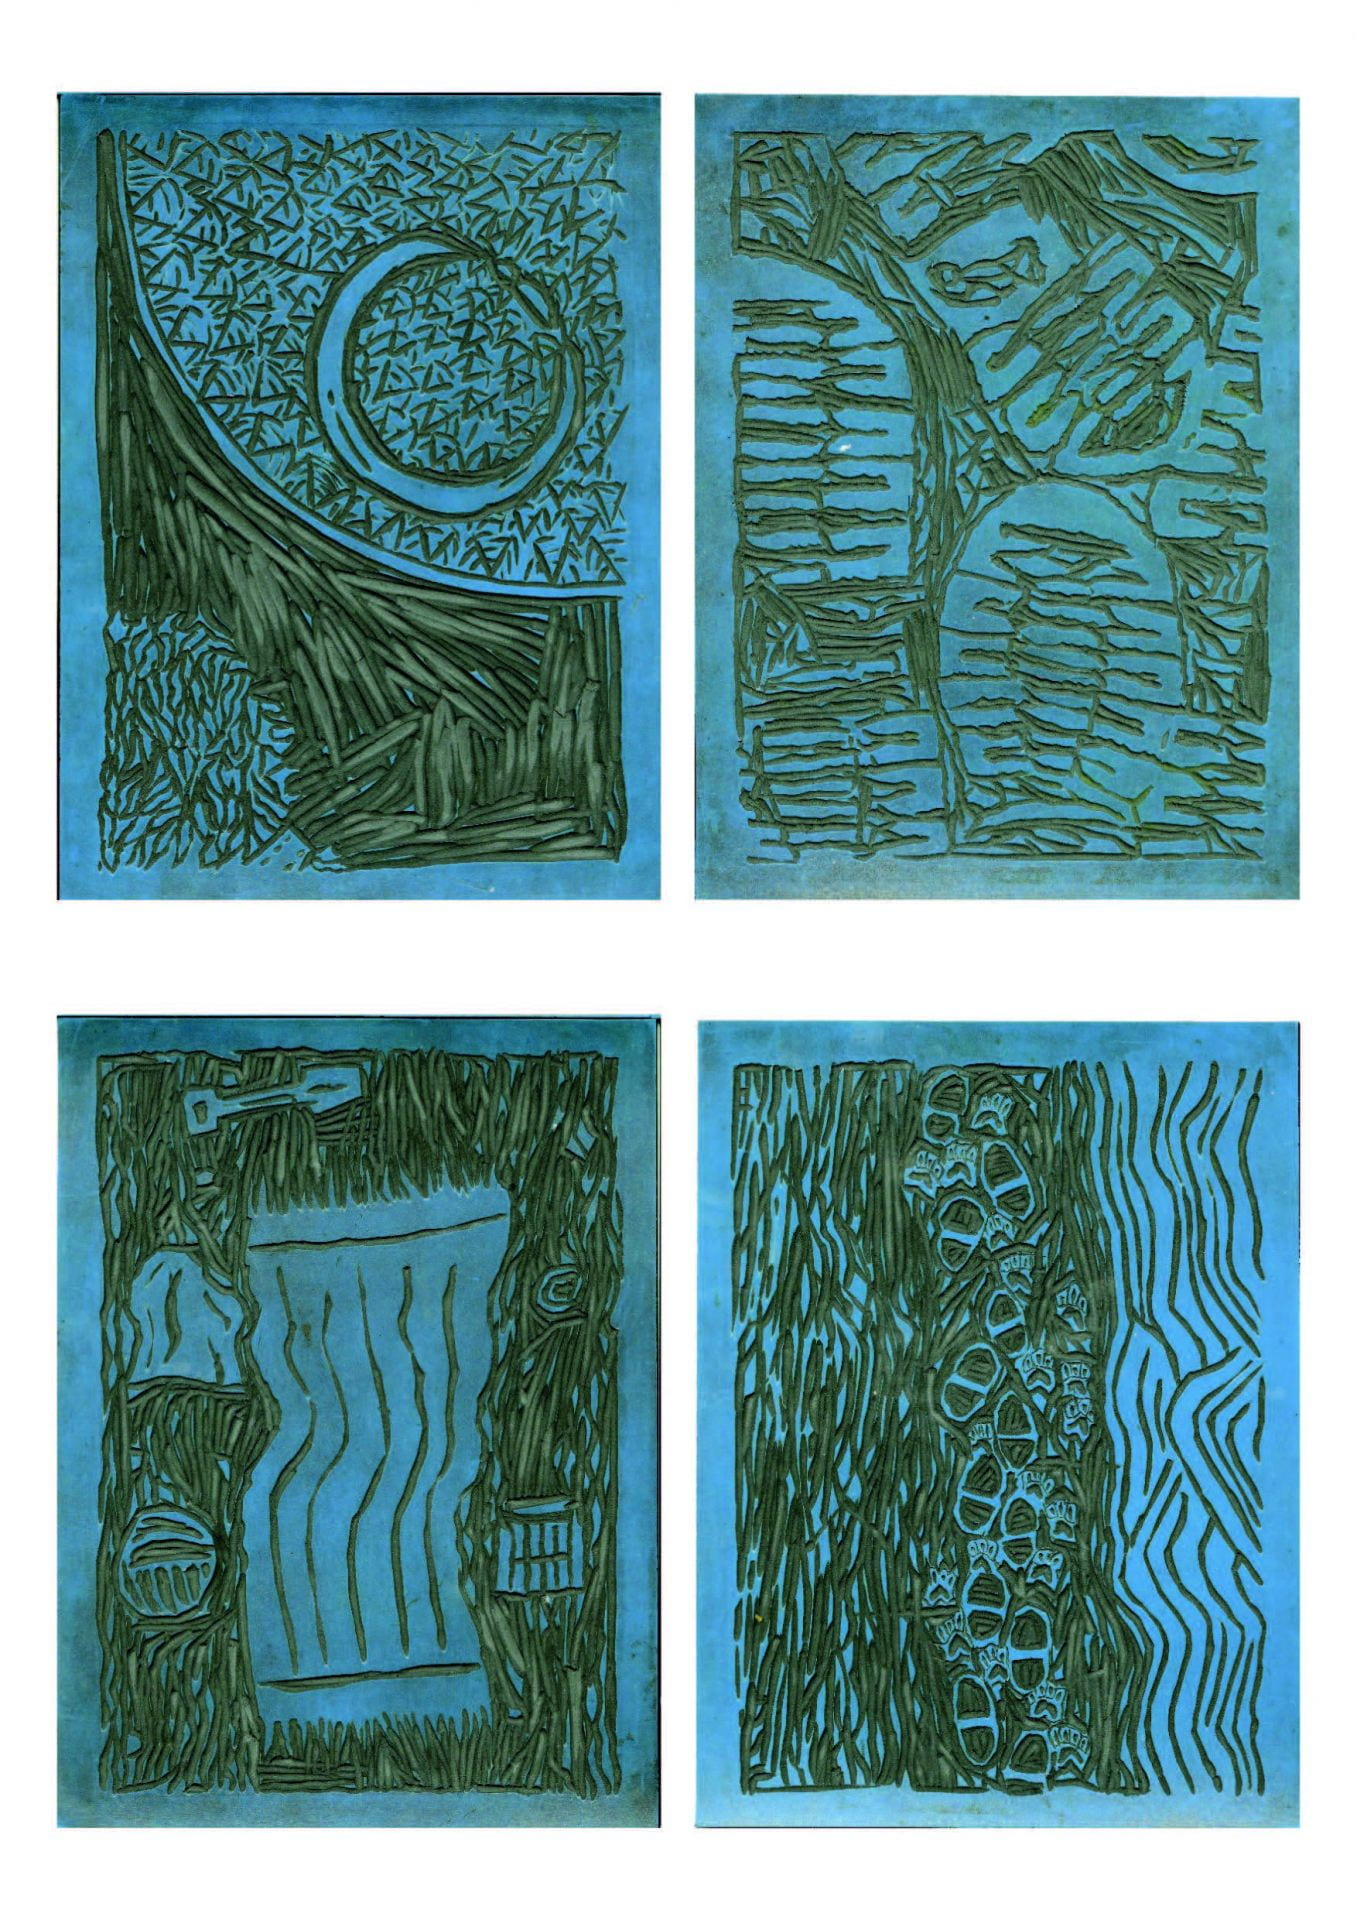 Examples of lino prints.